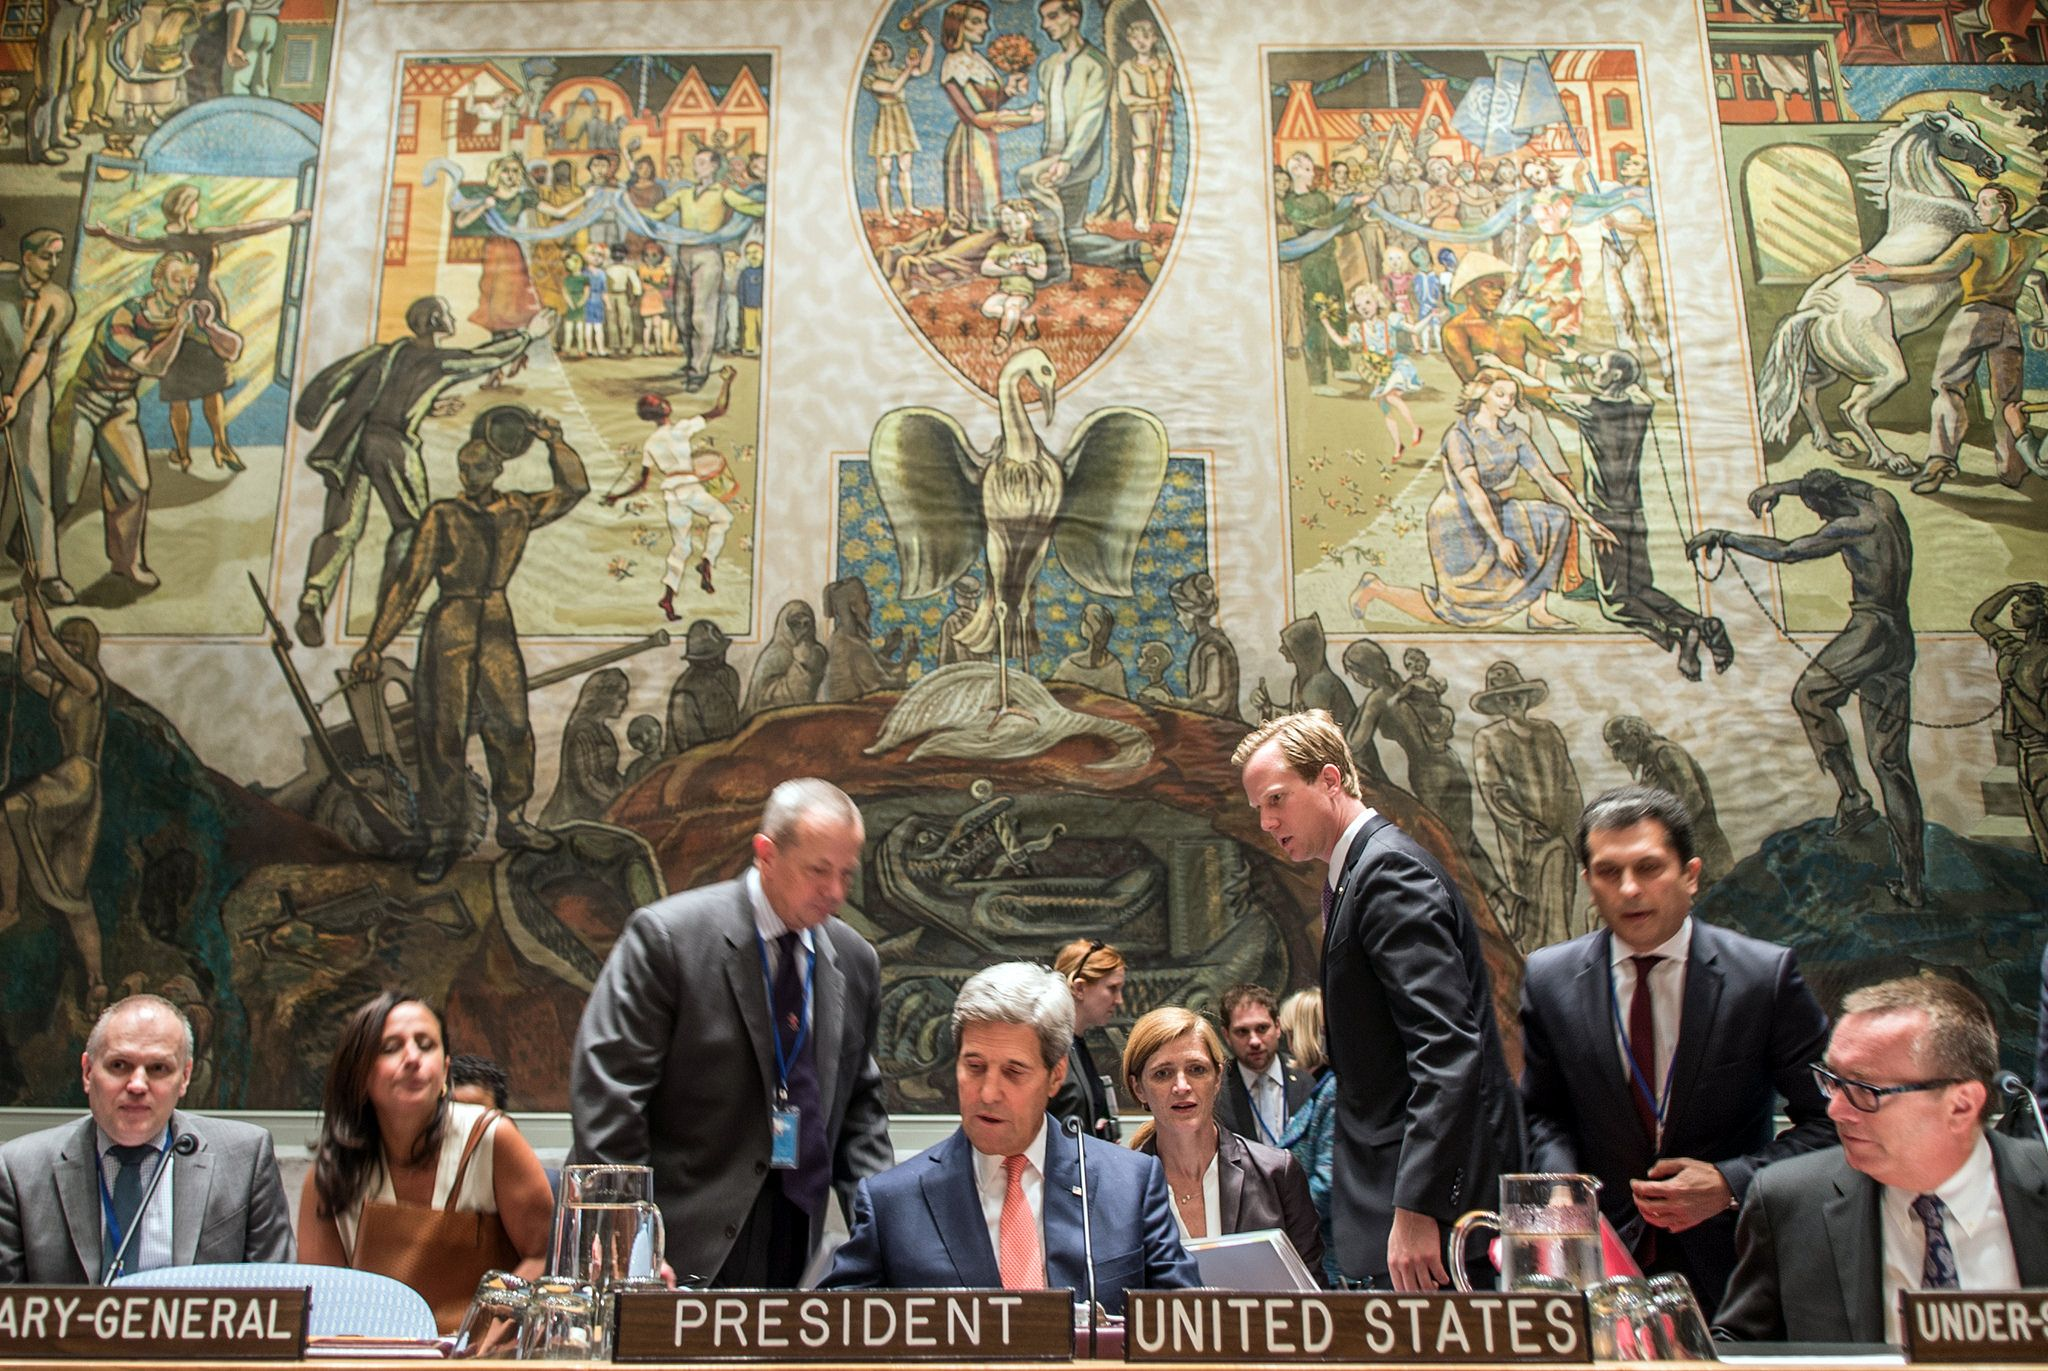 For the past 13 years, the United Nations has been working on a UN Gun Treaty that has been ratified by 55 of their member states.